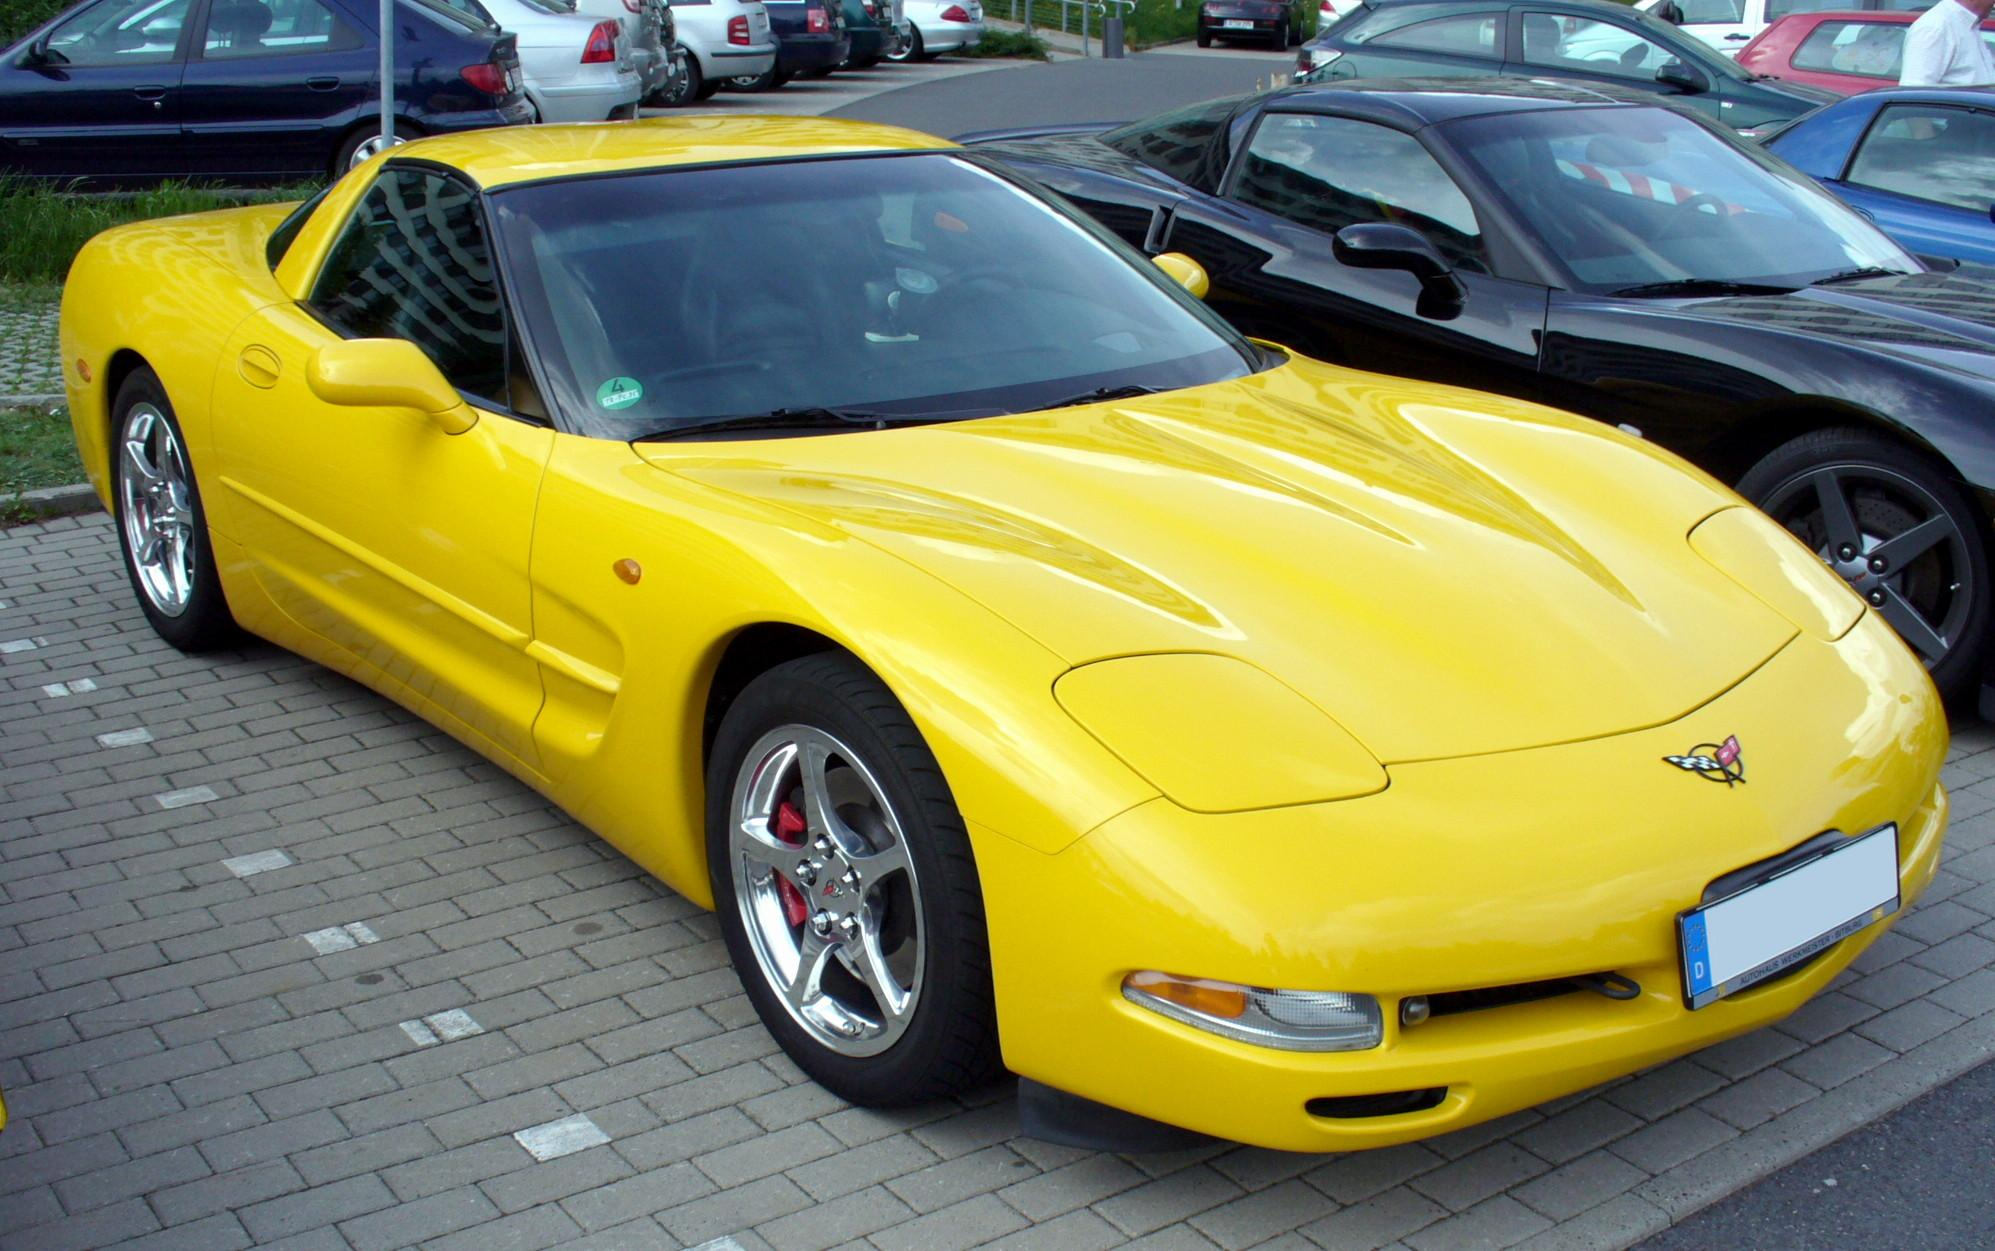 1992 Chevrolet Corvette C4 Coupe Pictures Information And Specs Engine Diagram Images 11